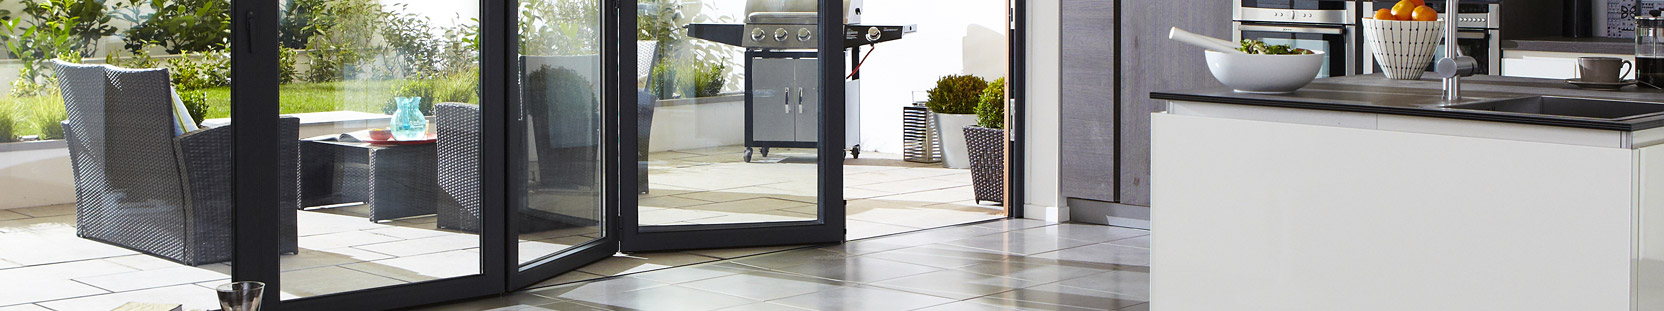 Sliding doors with an access leaf